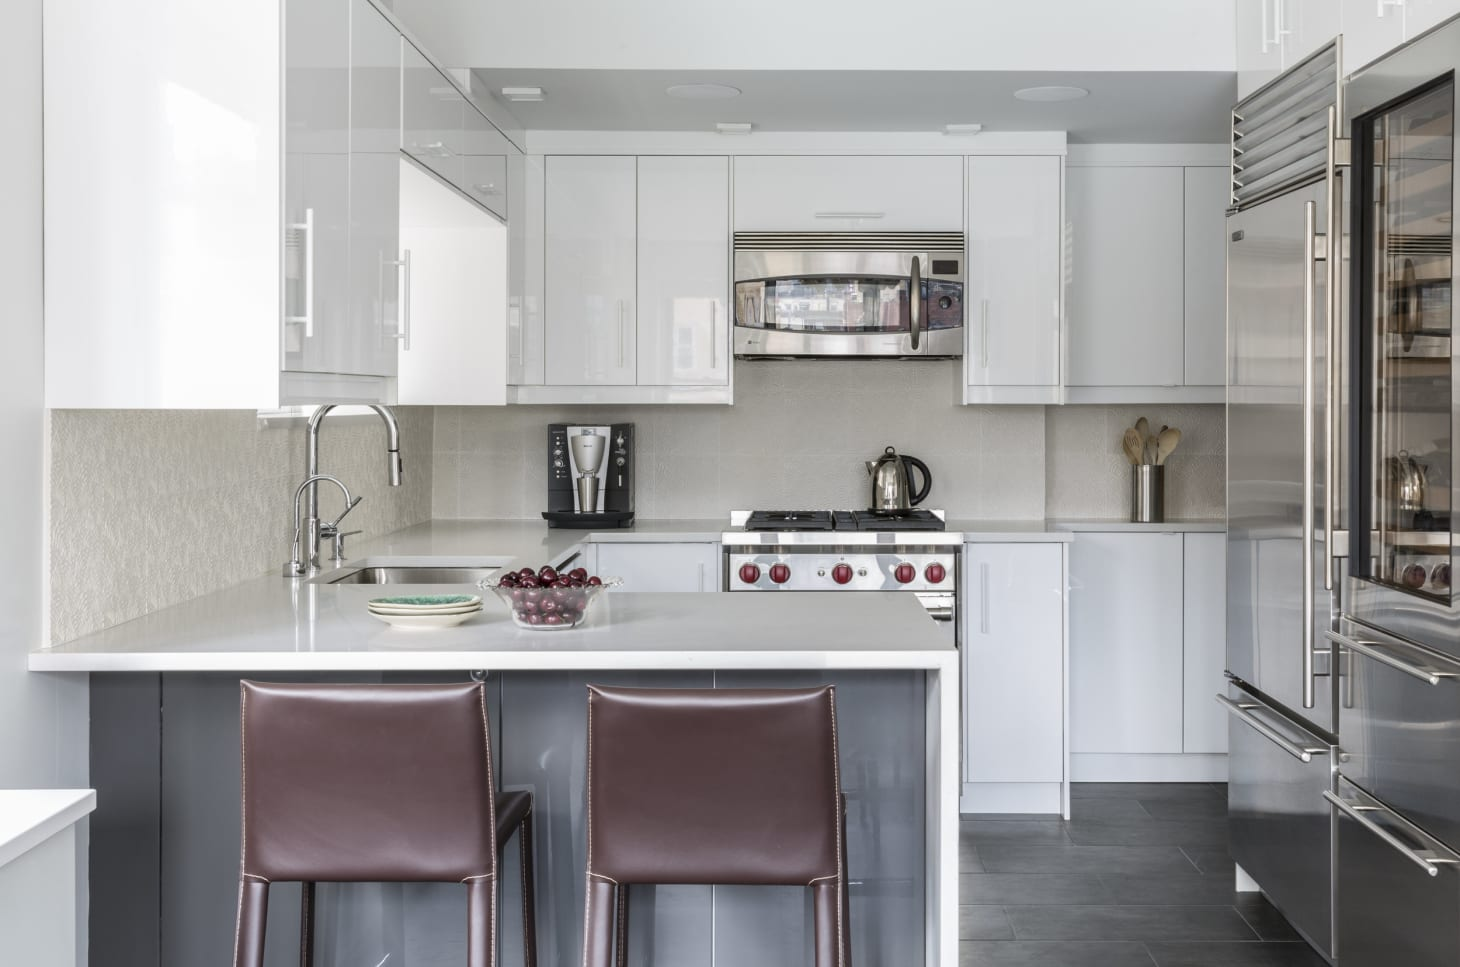 How Much Does It Cost To Get IKEA Cabinets? | Kitchn